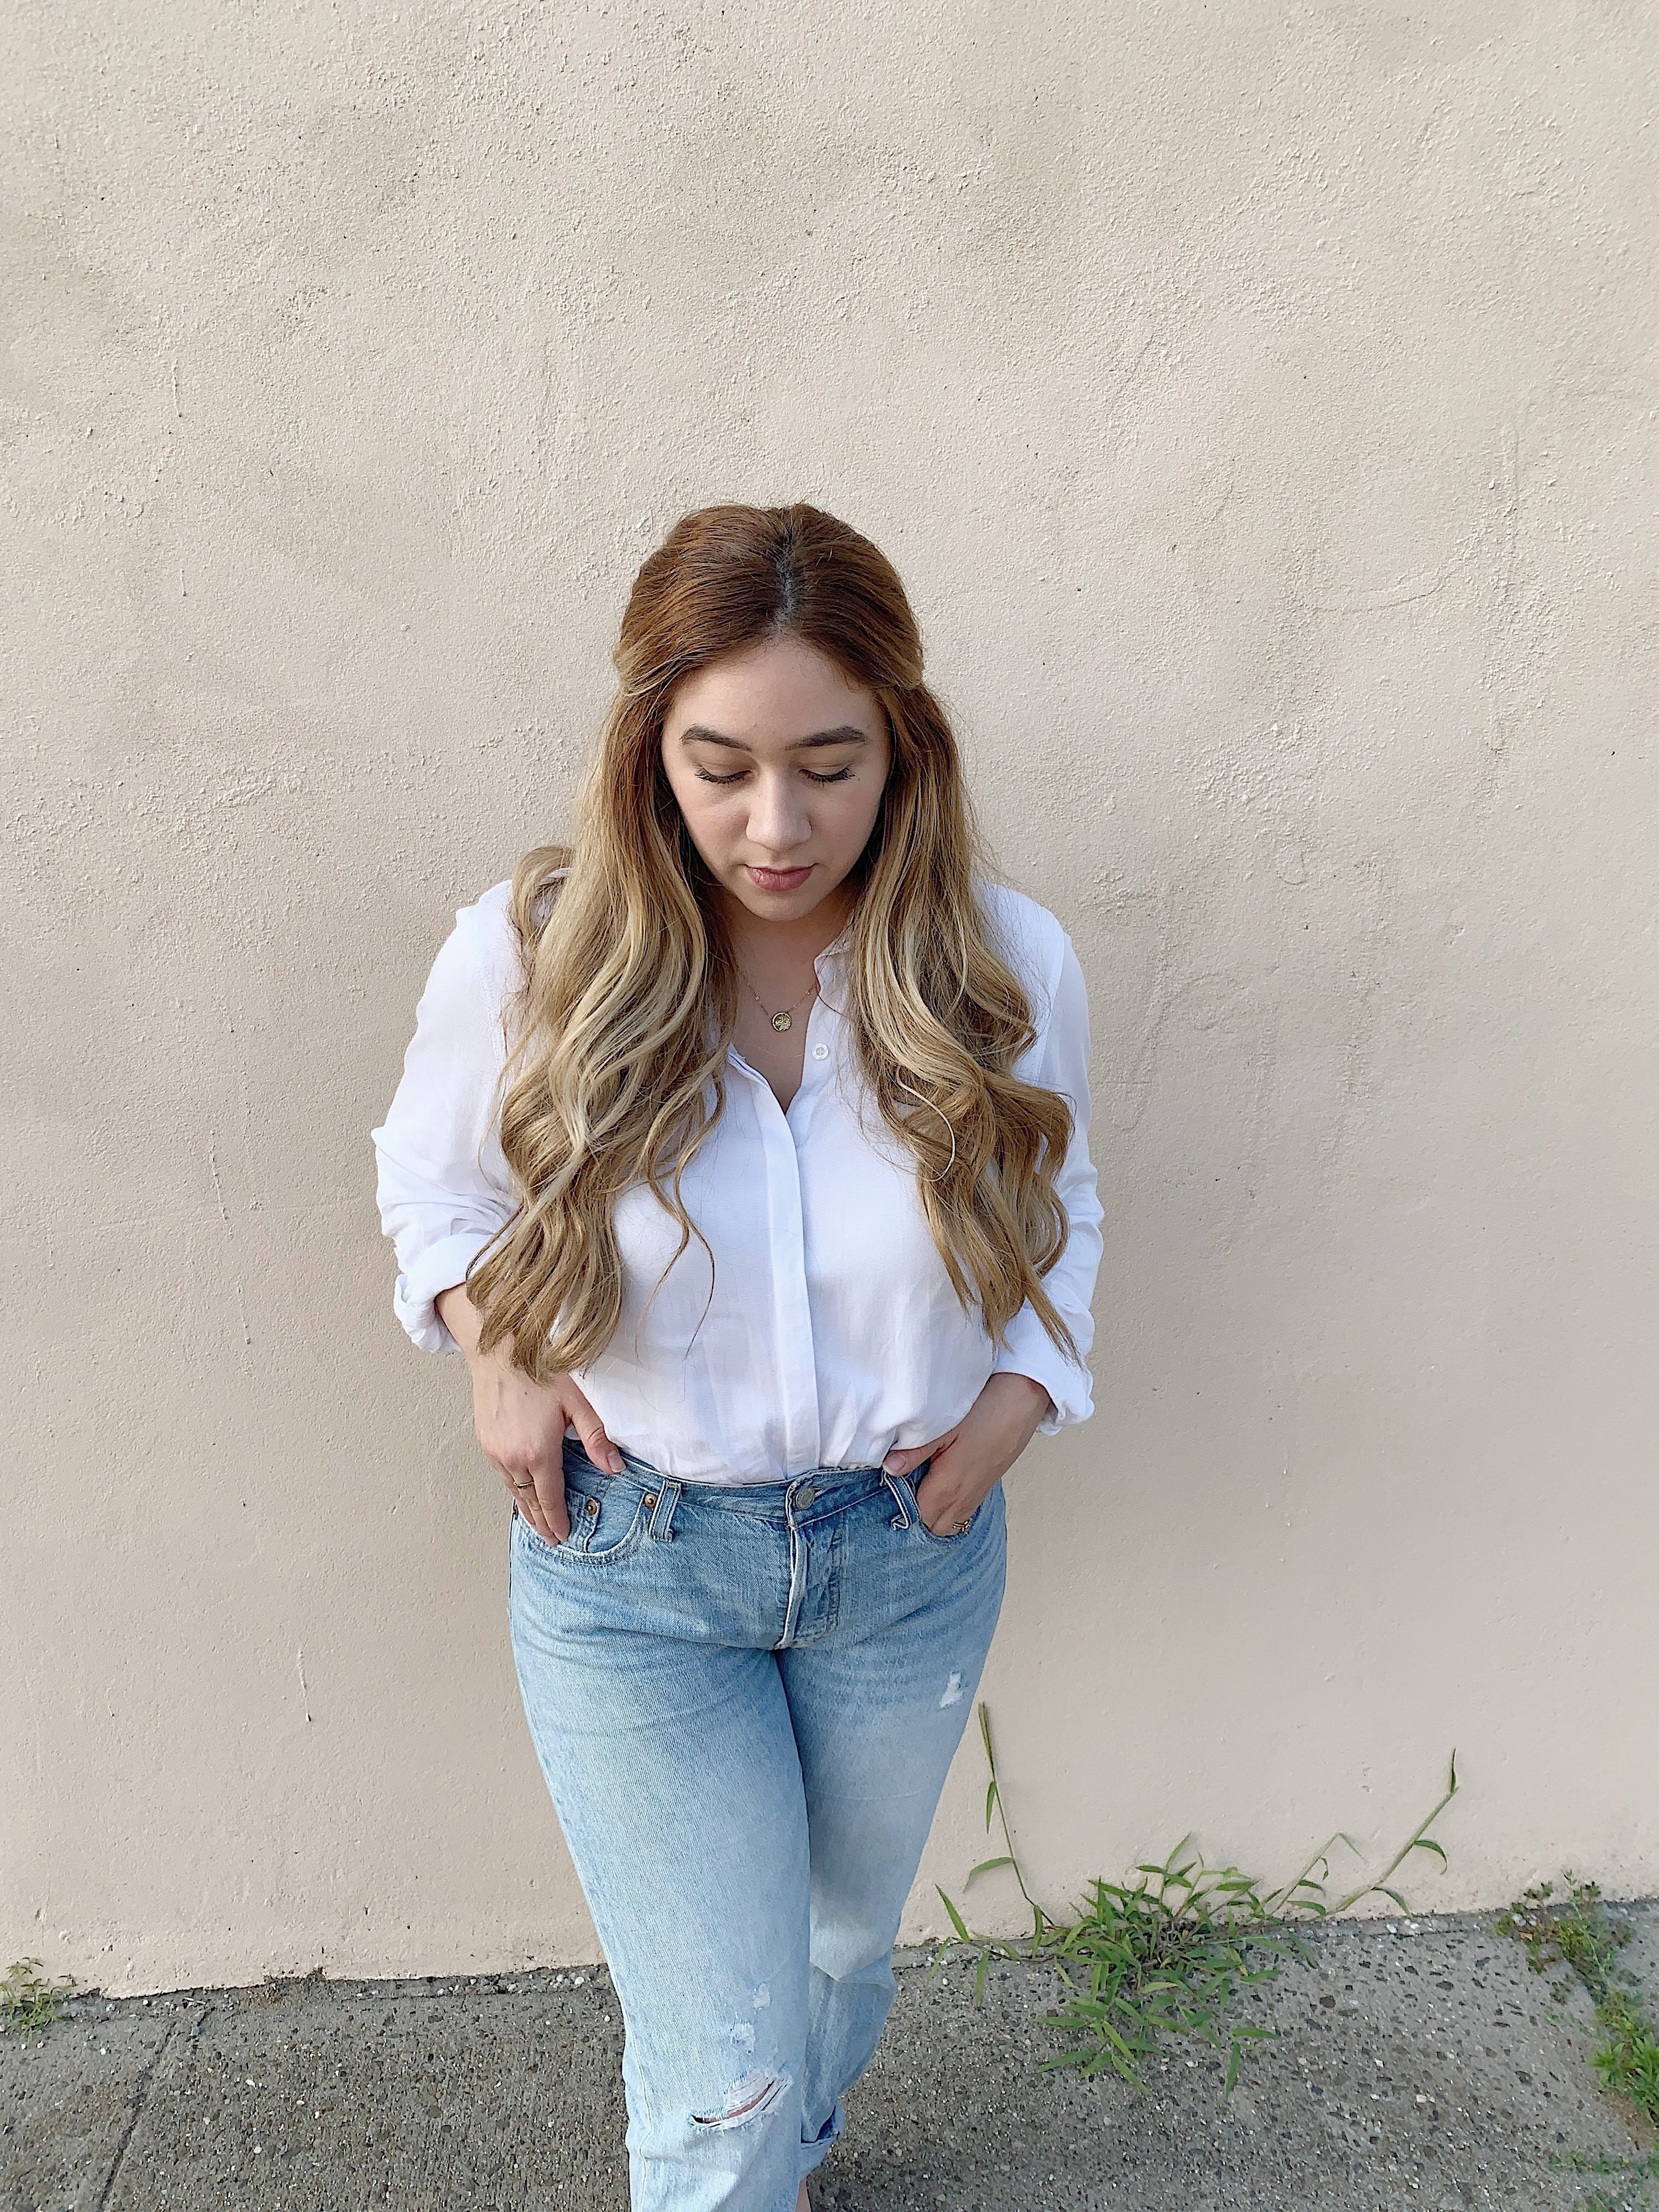 Top: Thrifted  Jeans: Levis 501  Necklace: Made by Mary